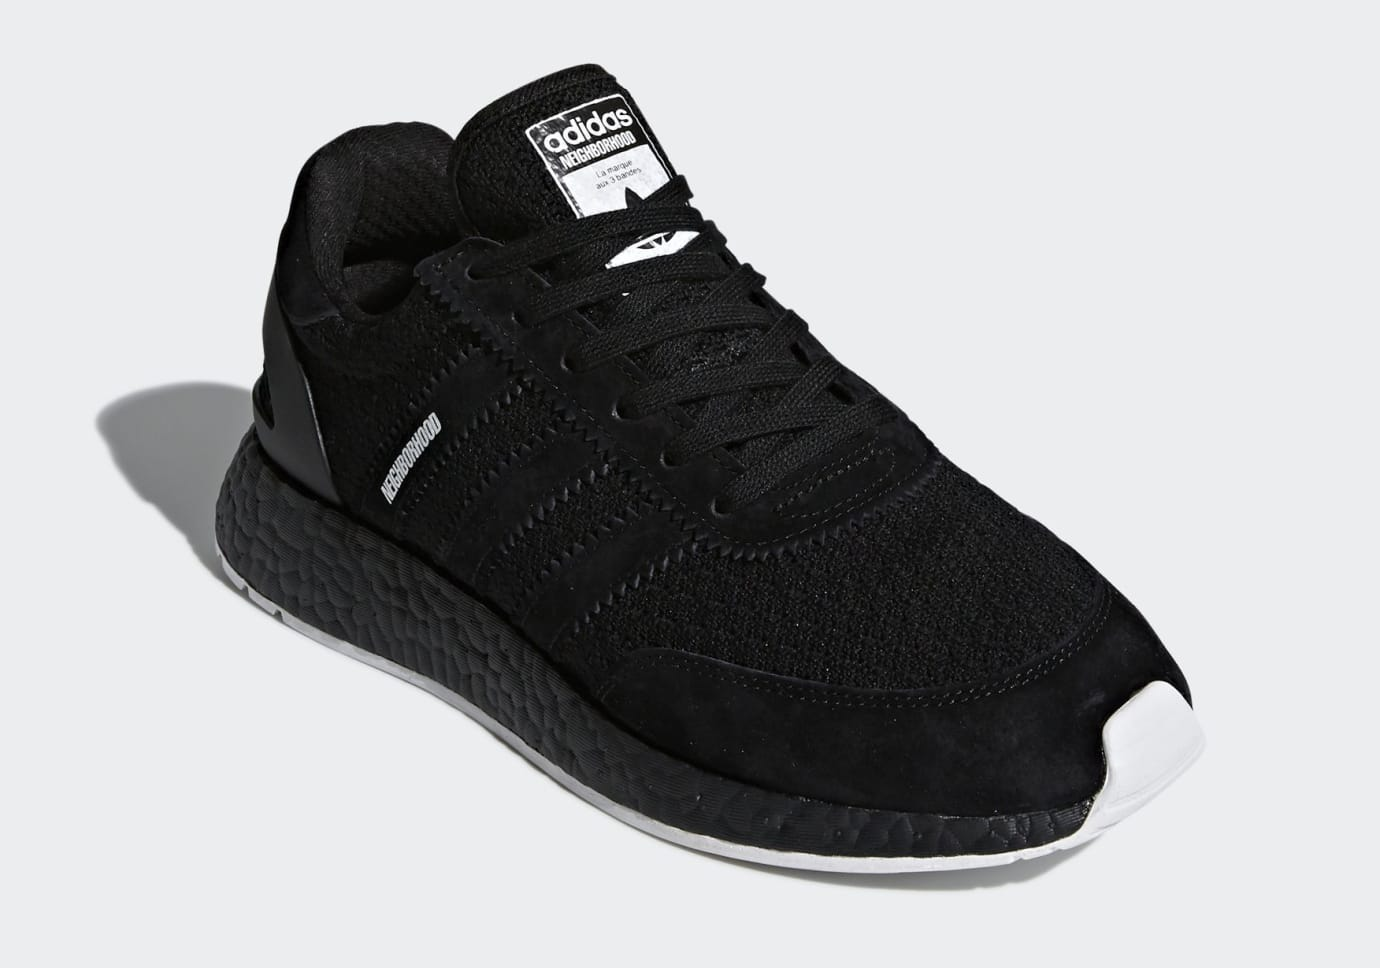 8e55ea8a2 Image via Adidas Neighborhood x Adidas I-5923 DA8838 (Angle)